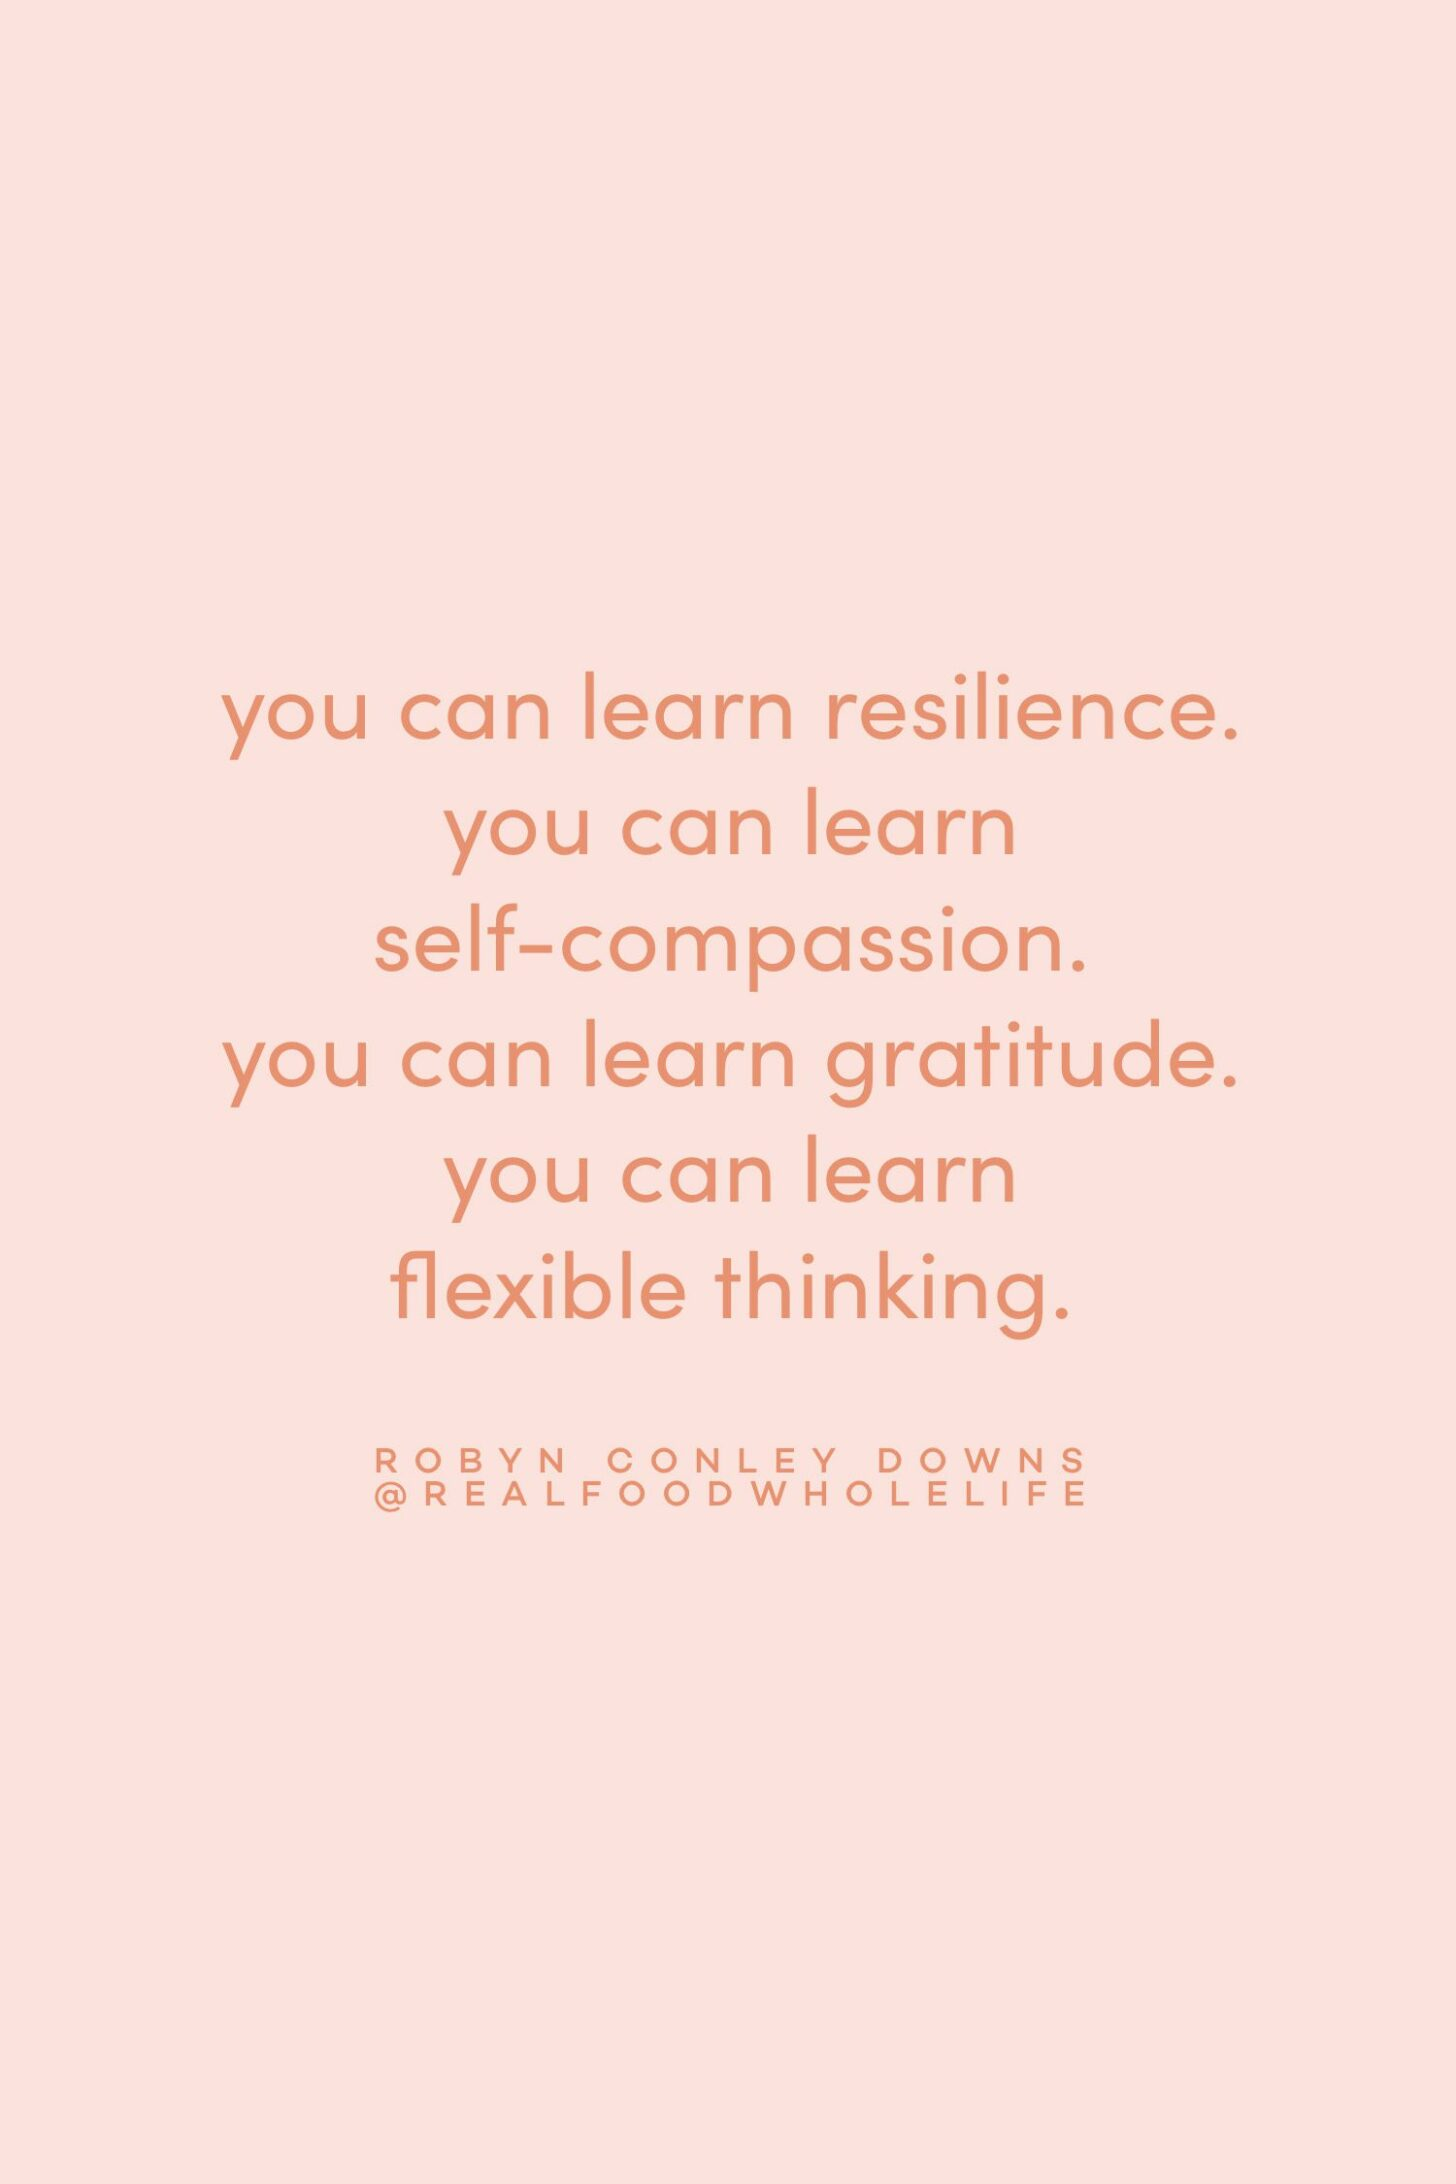 Quote on learning resilience by Robyn Conley Downs on the Feel Good Effect Podcast #realfoodwholelife #feelgoodeffectpodcast #realfoodwholelife #motivationalquote #inspirationalquote #positivityquote #feelgoodquote #nonjudgementquote #selfcompassionquote #selfcarequote #selflovequote #healingquote #feelingquote #resiliencequote #gratitudequote